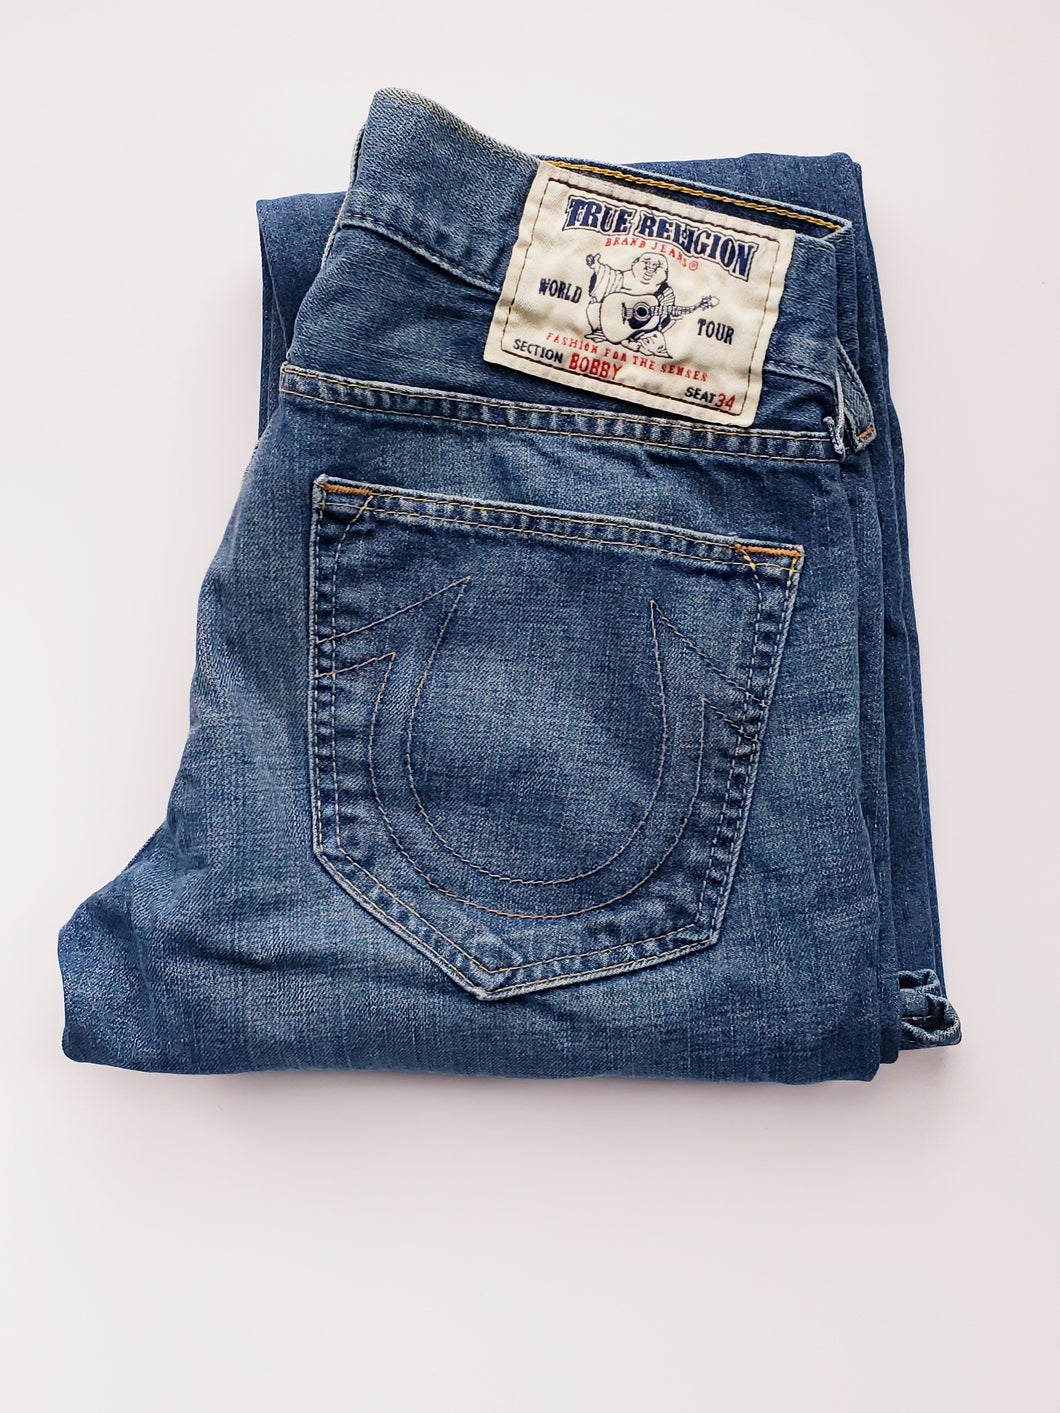 True Religion Jeans - (Un)Popular Fashion Society